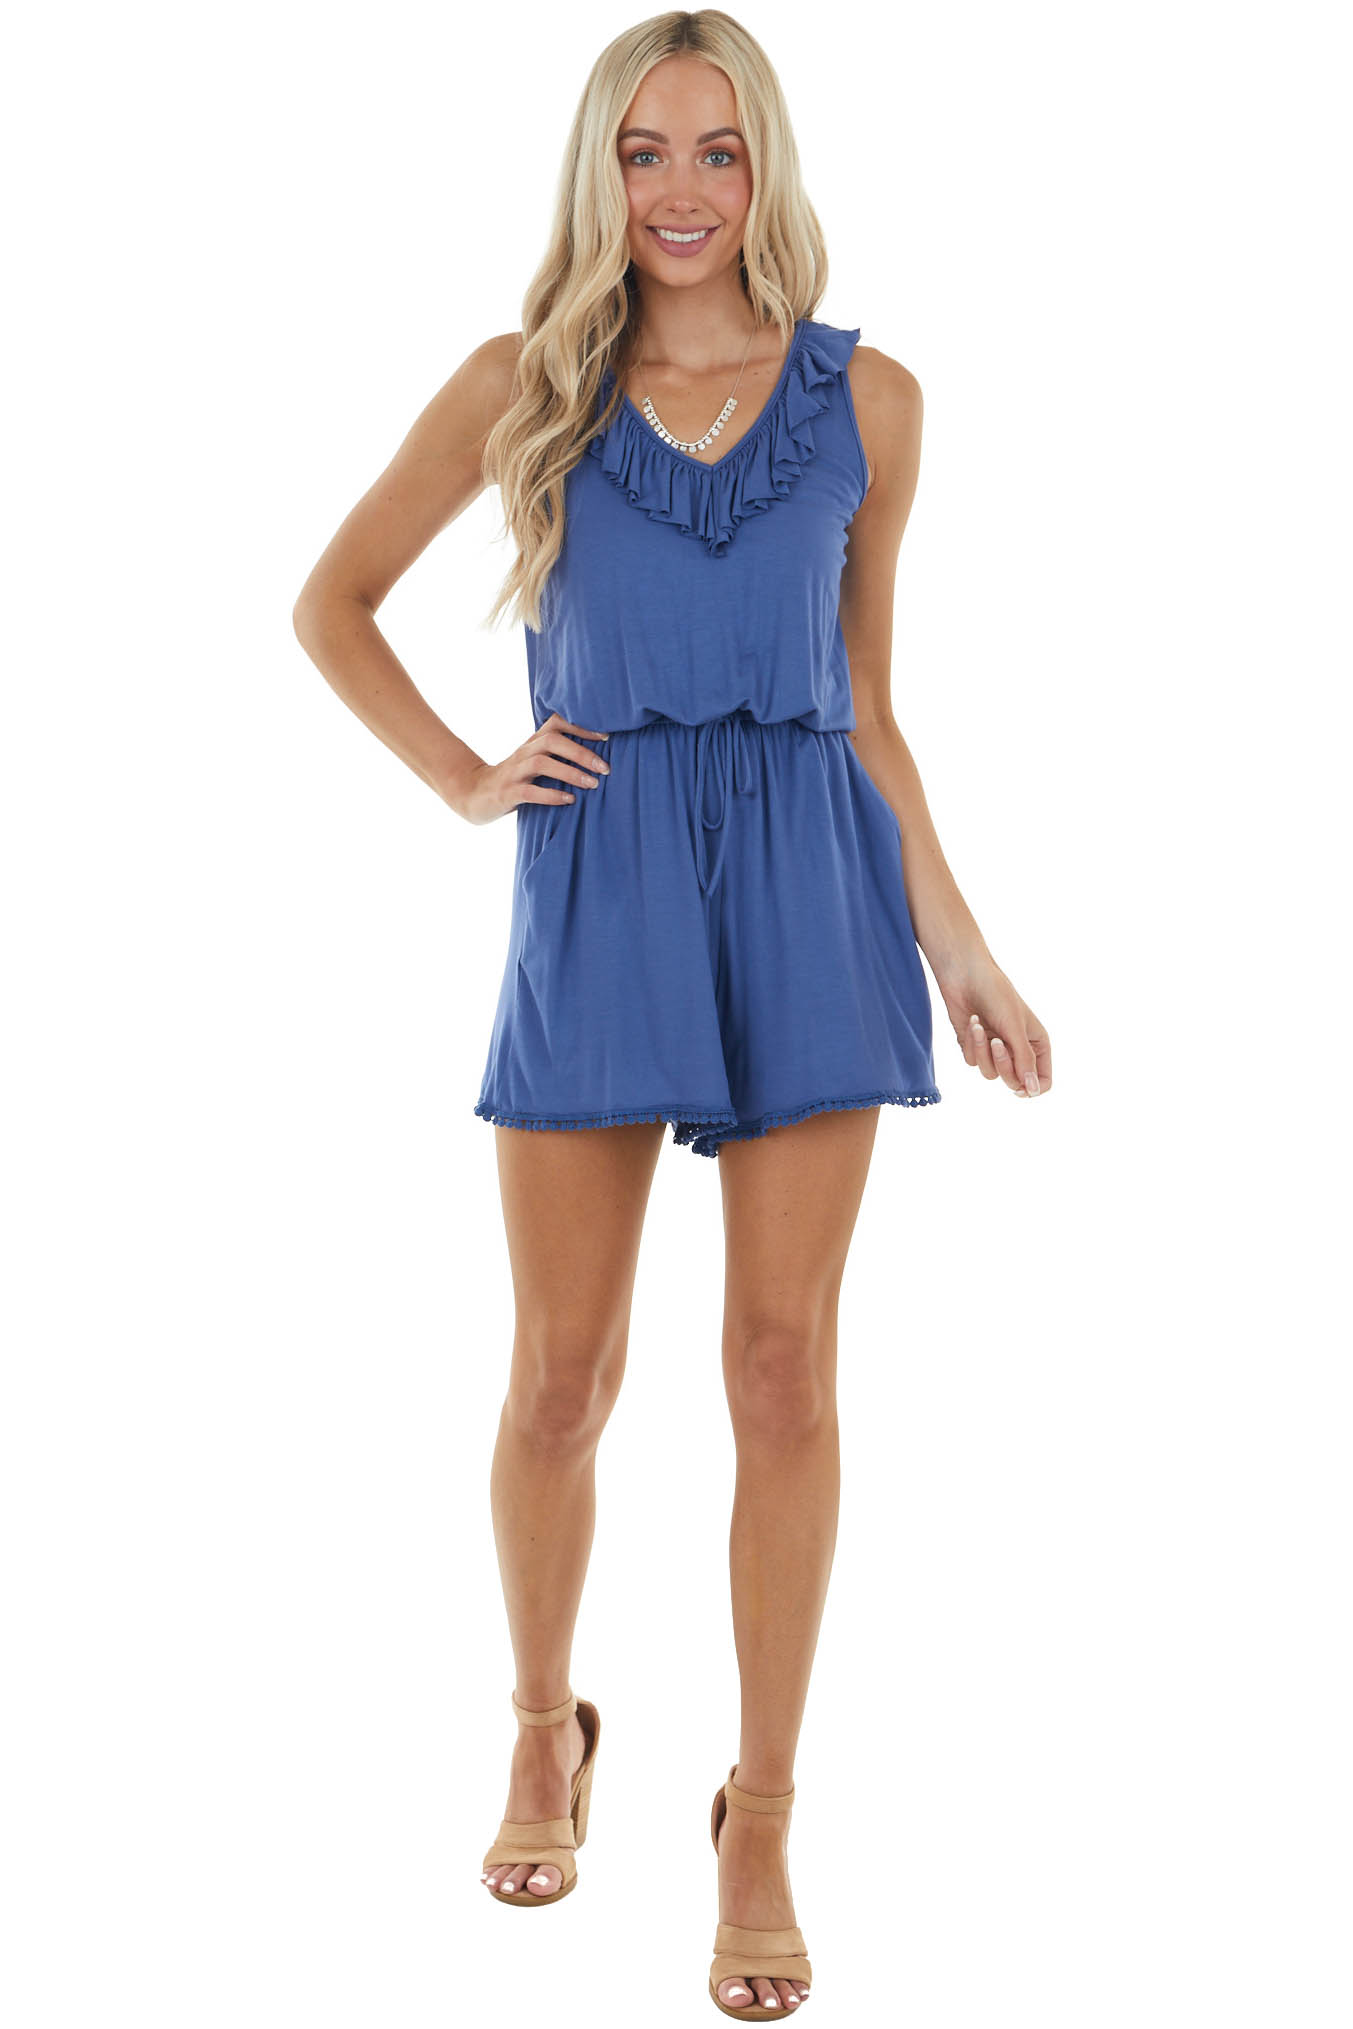 Cobalt Blue Sleeveless Romper with Lace Trim Details